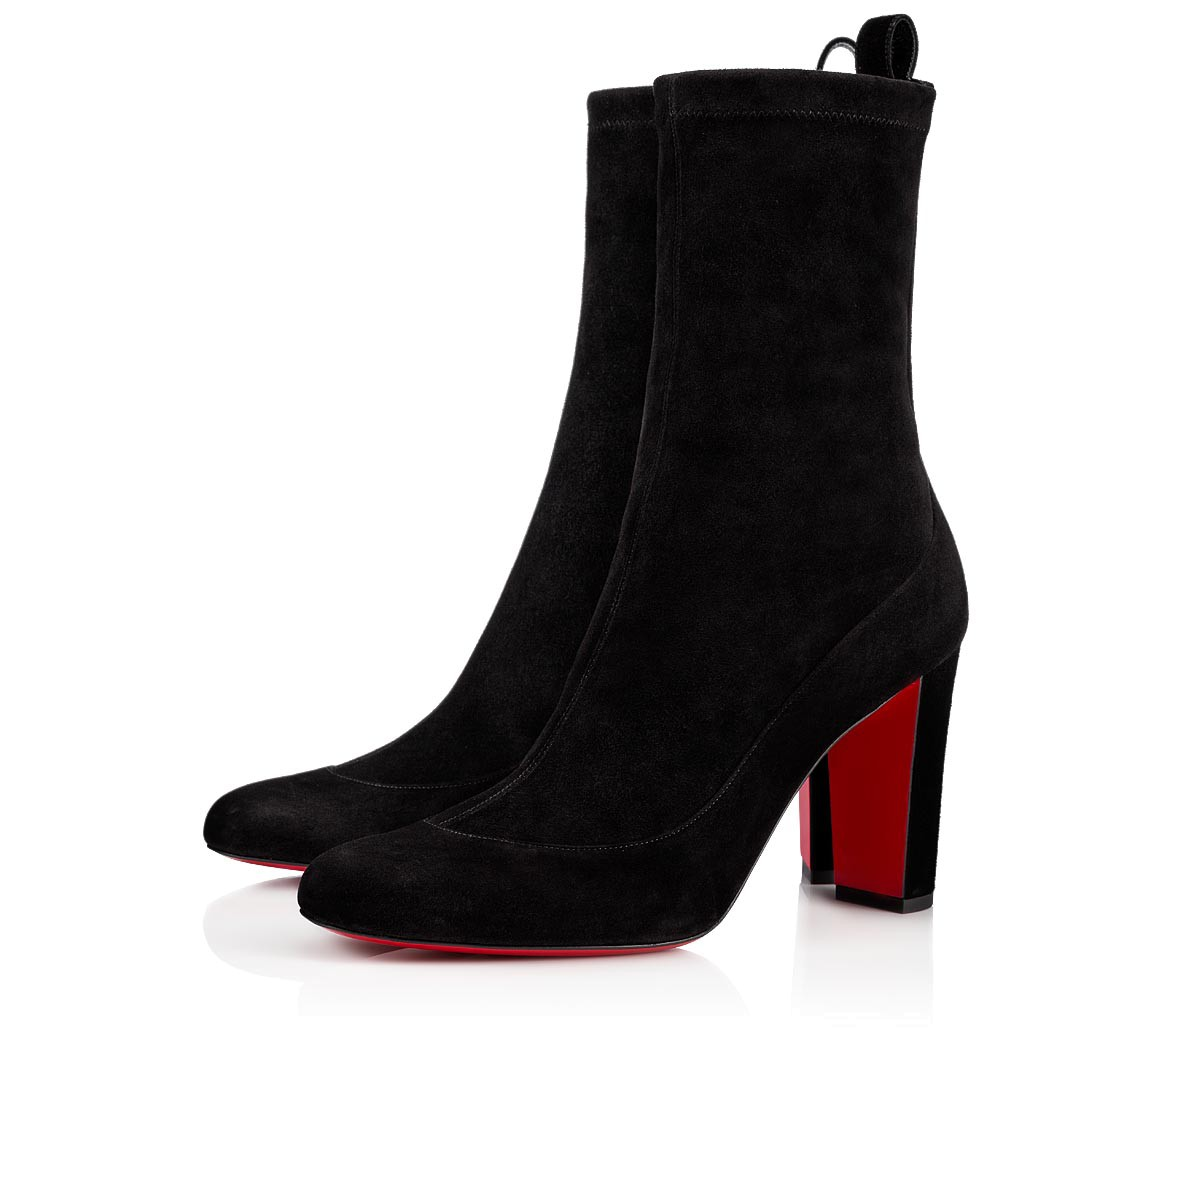 941d0f4e0e2 GENA BOOTIE 85 Black Veau Velours - Women Shoes - Christian Louboutin